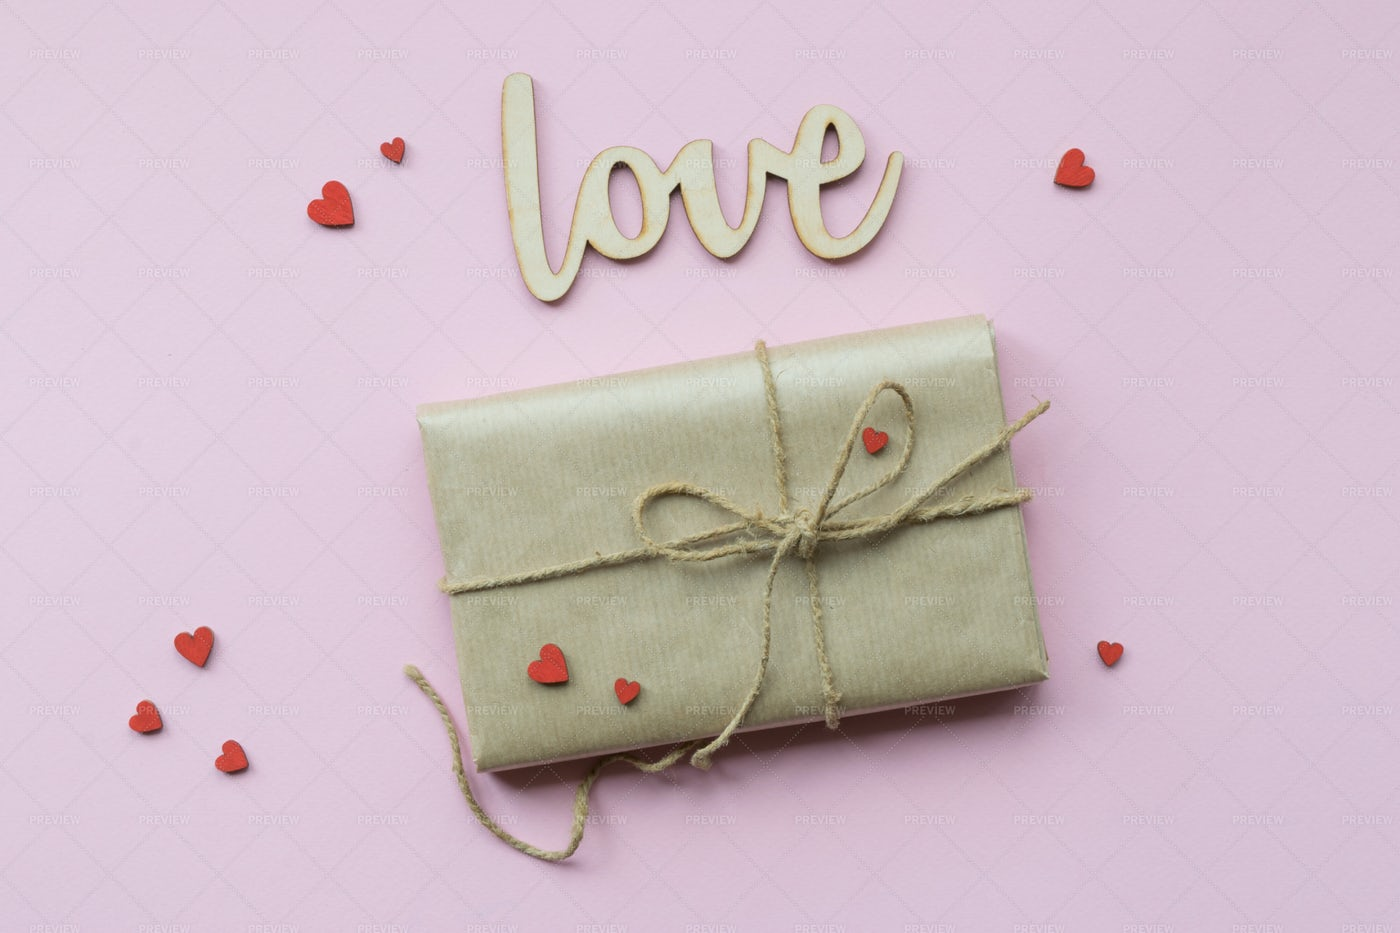 Romantic Gift With Decorative Red Hearts: Stock Photos